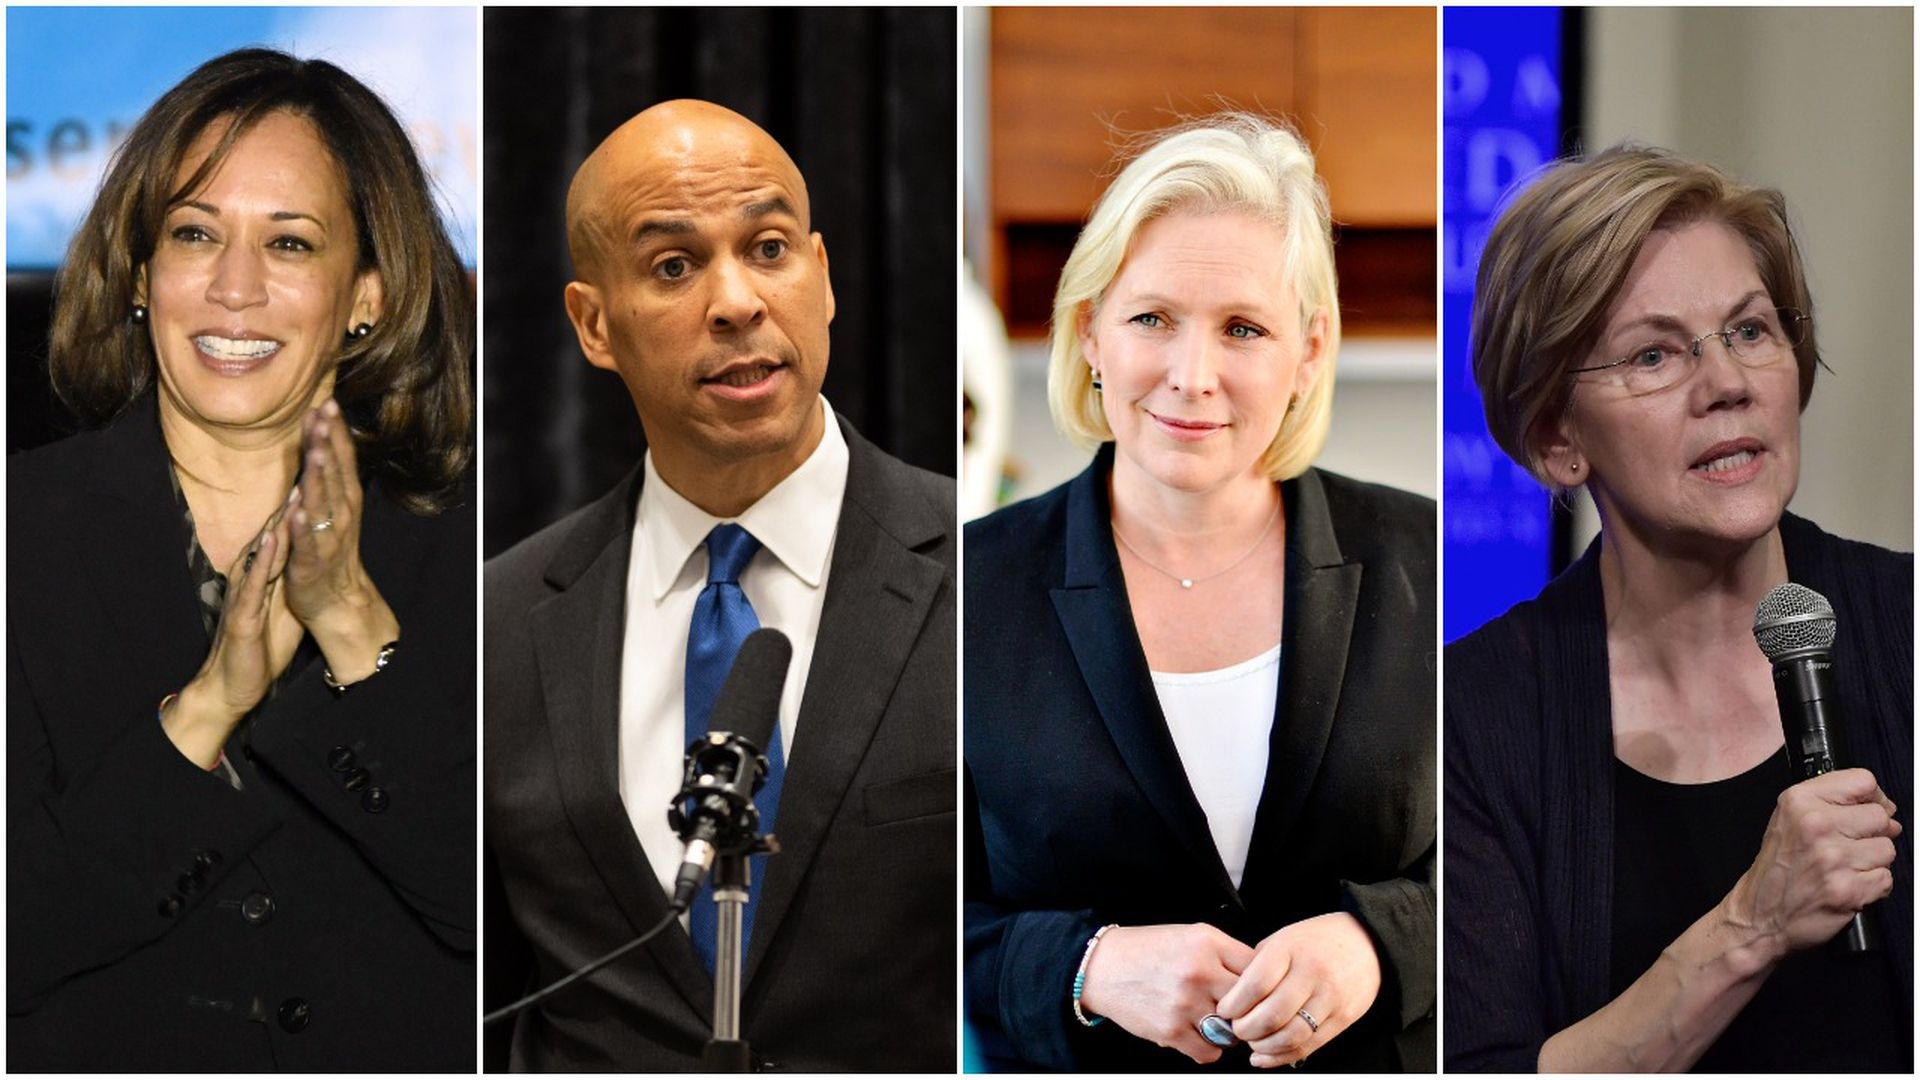 Kamala Harris, Cory Booker, Kirsten Gillibrand and Elizabeth Warren